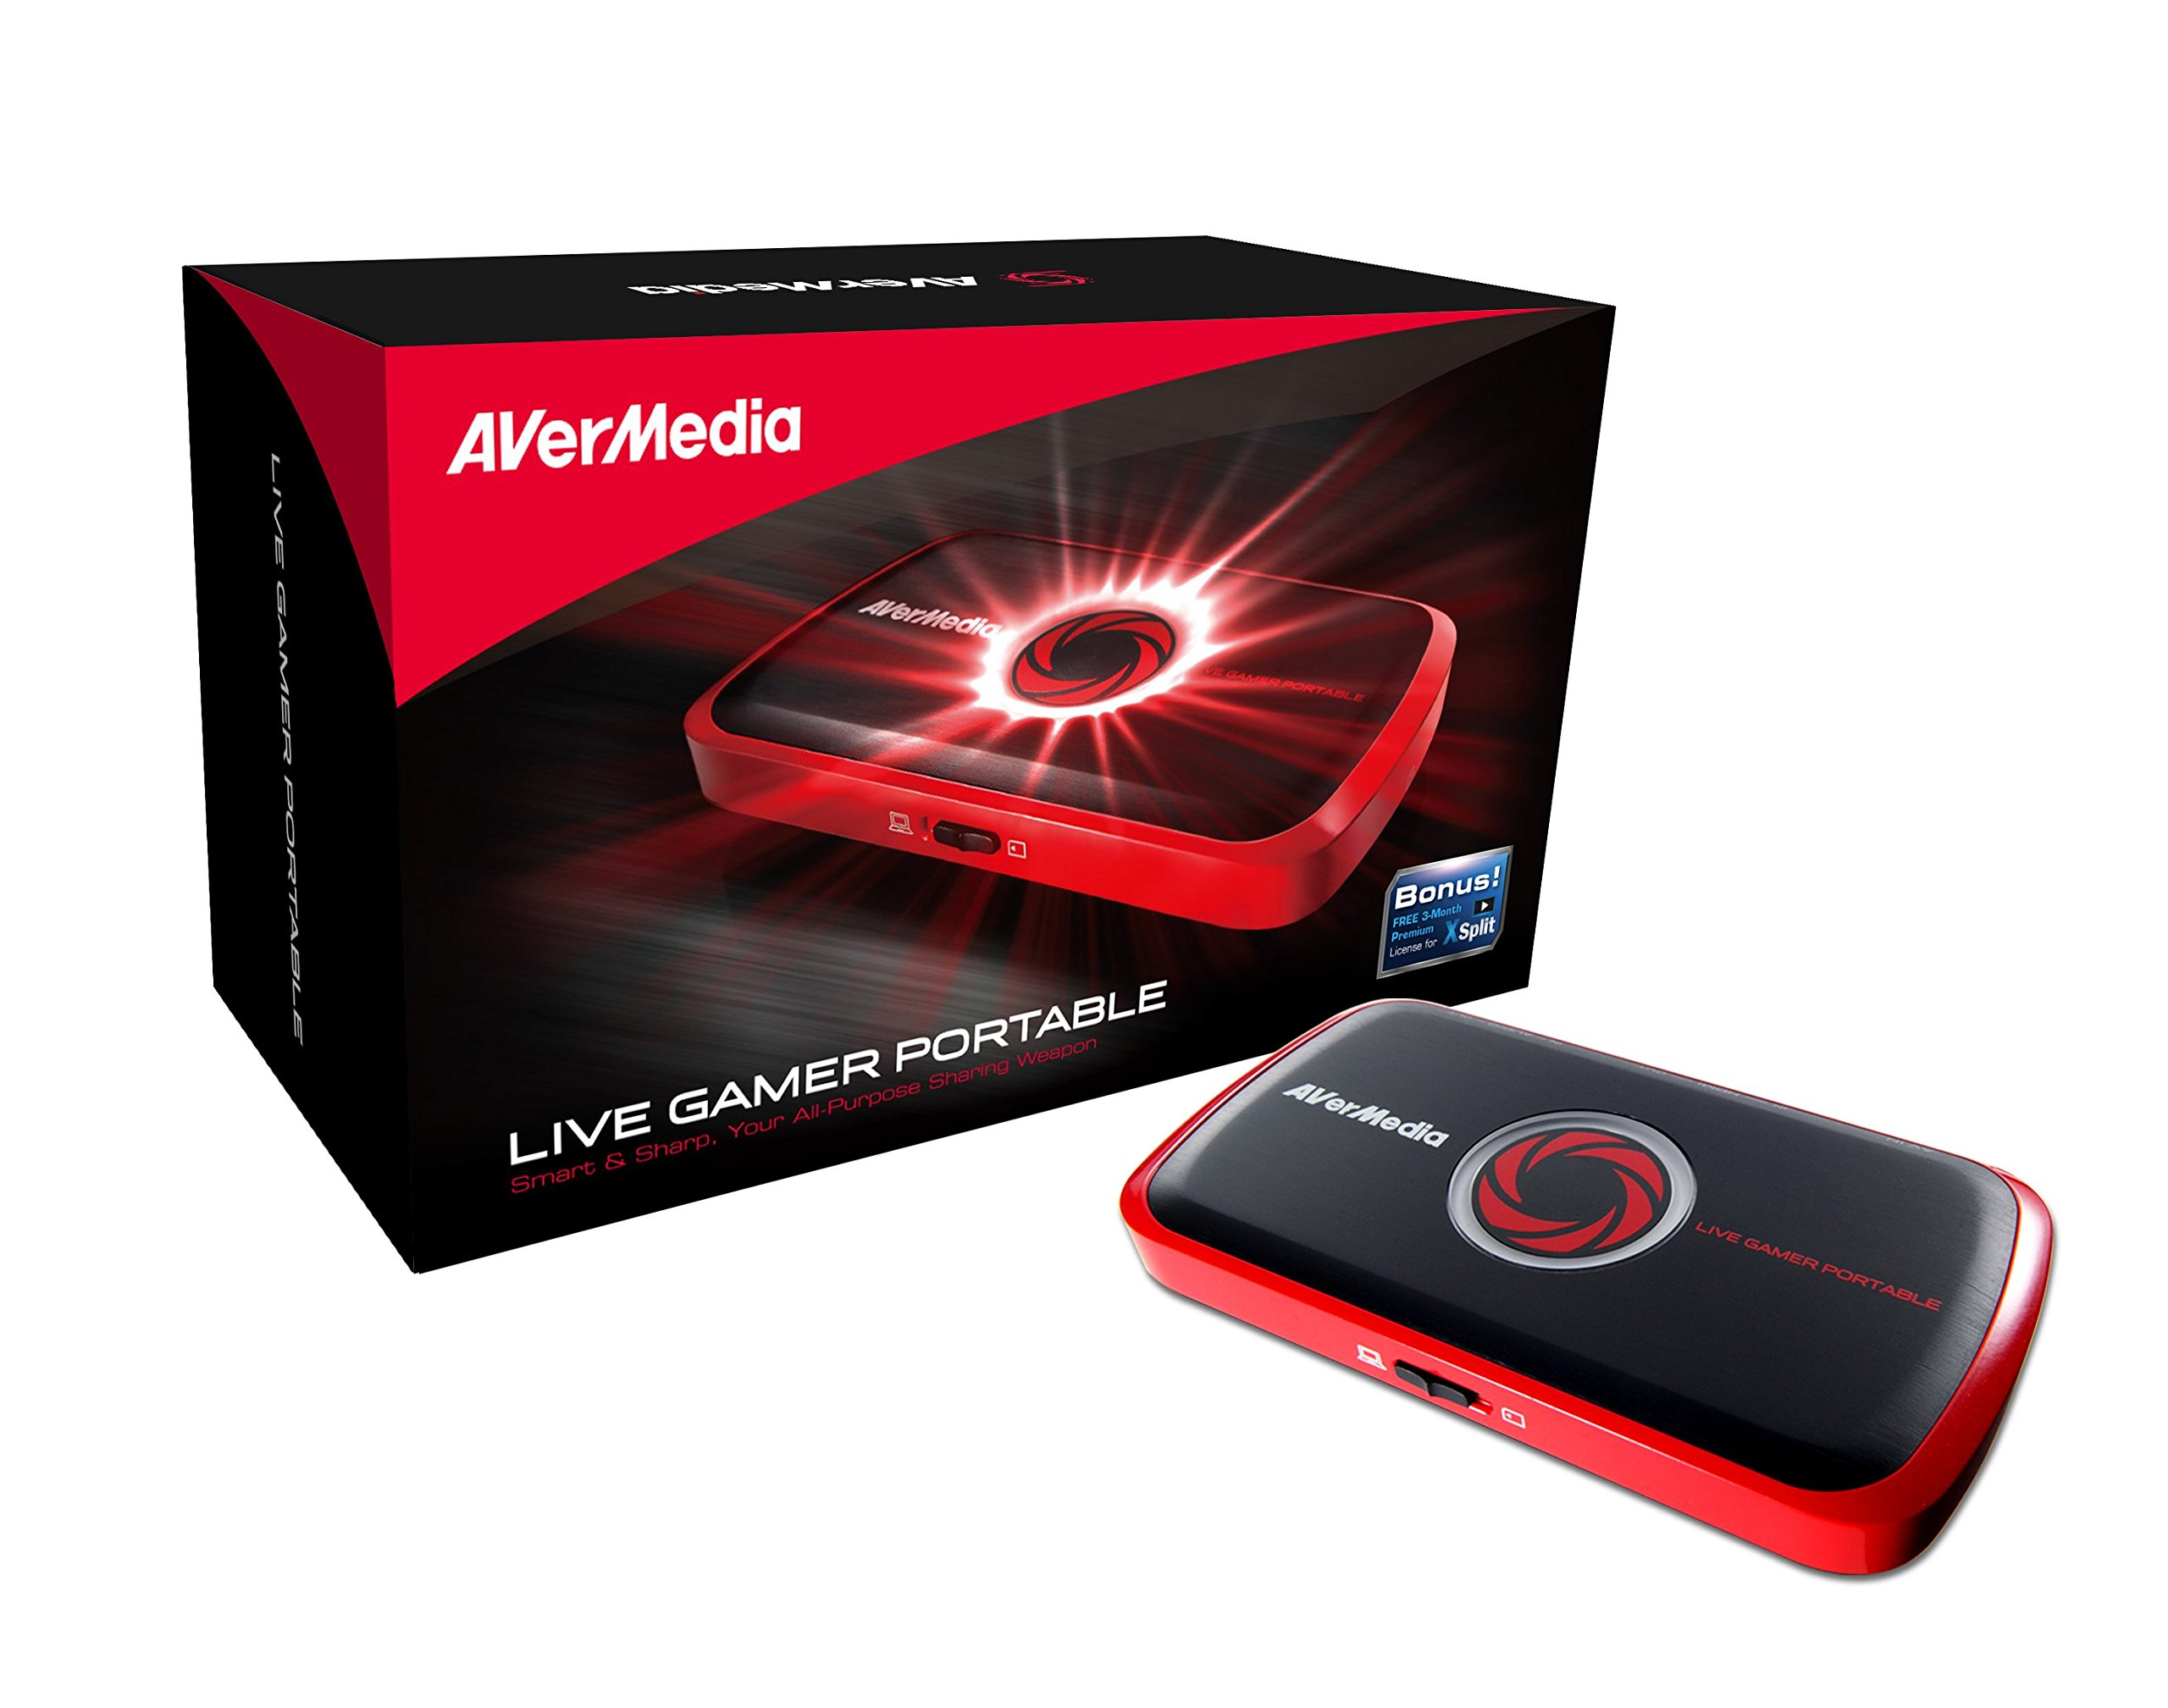 AVerMedia Live Gamer Portable, Full HD 1080p Recording Without PC Directly to SD Card, Ultra Low Latency, H.264 Hardware Encoding, USB Video Capture, High Definition Game Capture, Recorder, Streaming (C875) by AVerMedia